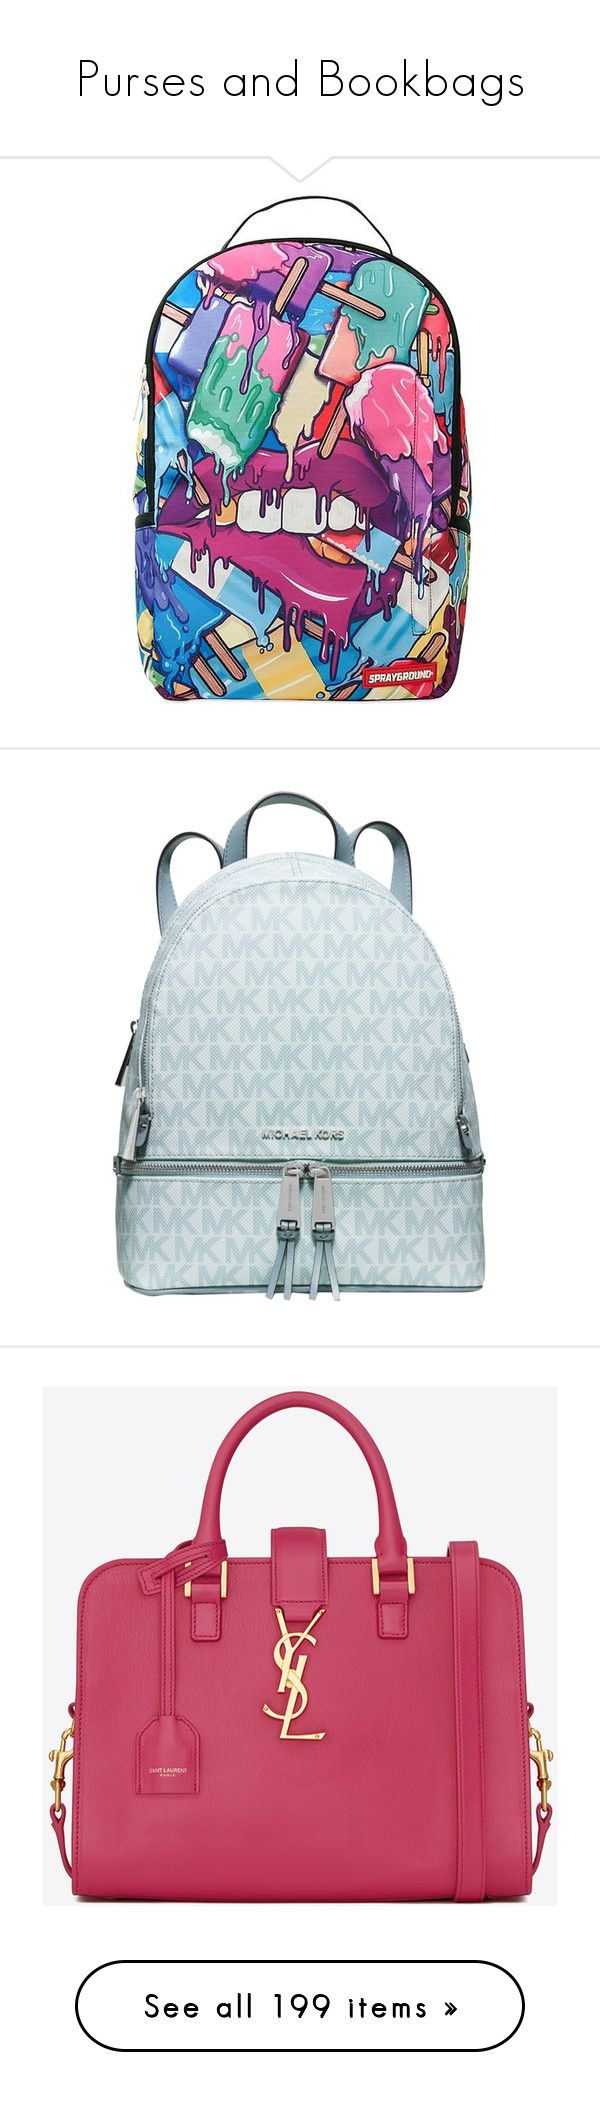 """""""Purses and Bookbags"""" by geazybxtch24 ❤ liked on Polyvore featuring bags, backpacks, accessories, multicolor, day pack backpack, multi coloured bags, multi colored backpacks, zipper bag, multi color backpack and michael kors"""